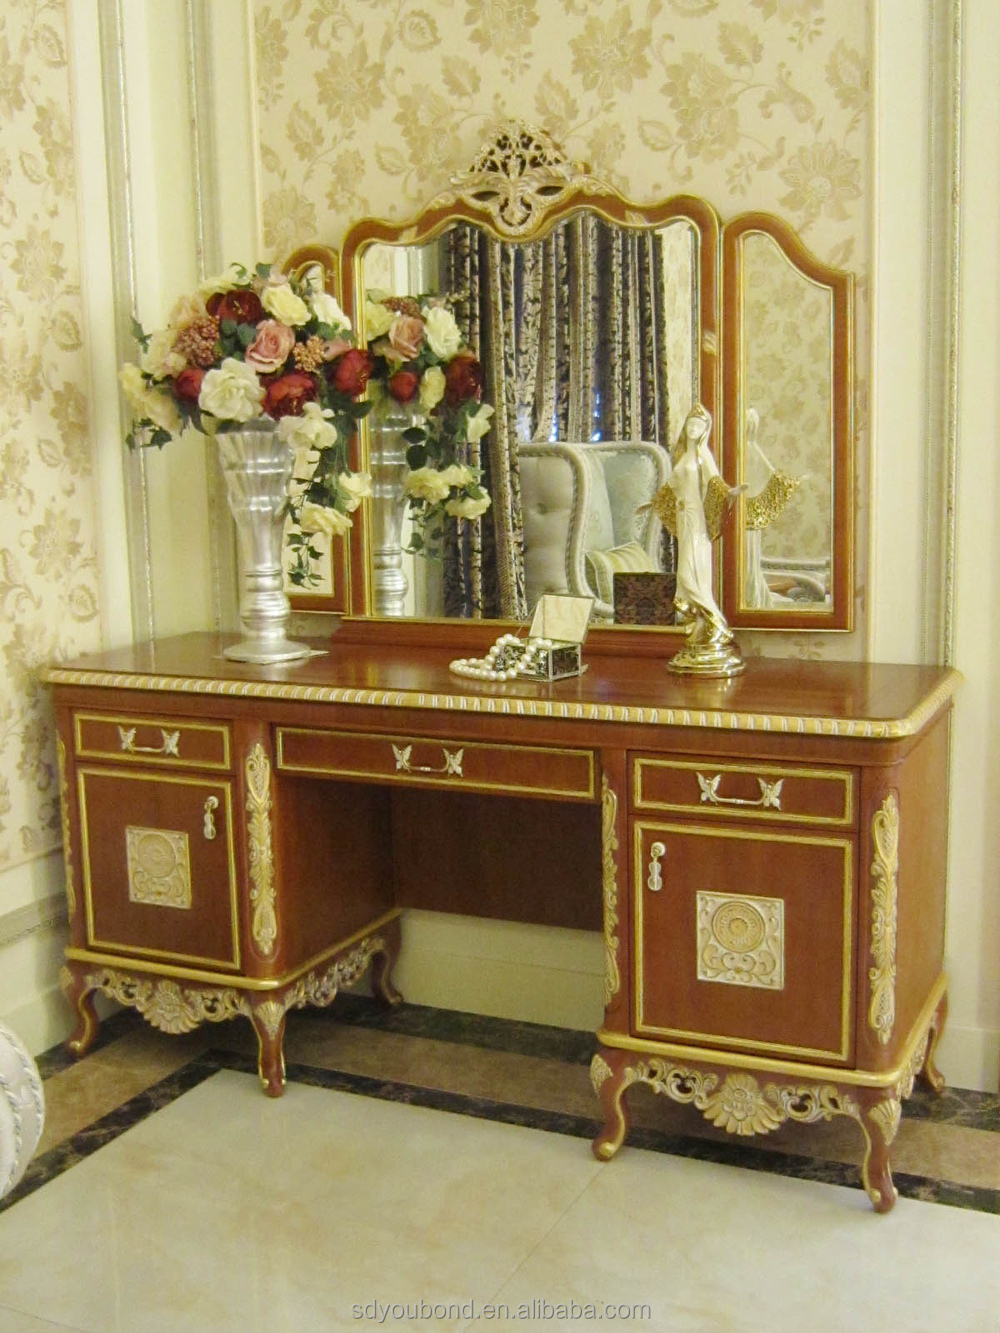 0050 American Style Home Furniture Dubai Luxury Hand Made Bedroom Set Furniture Buy Bedroom